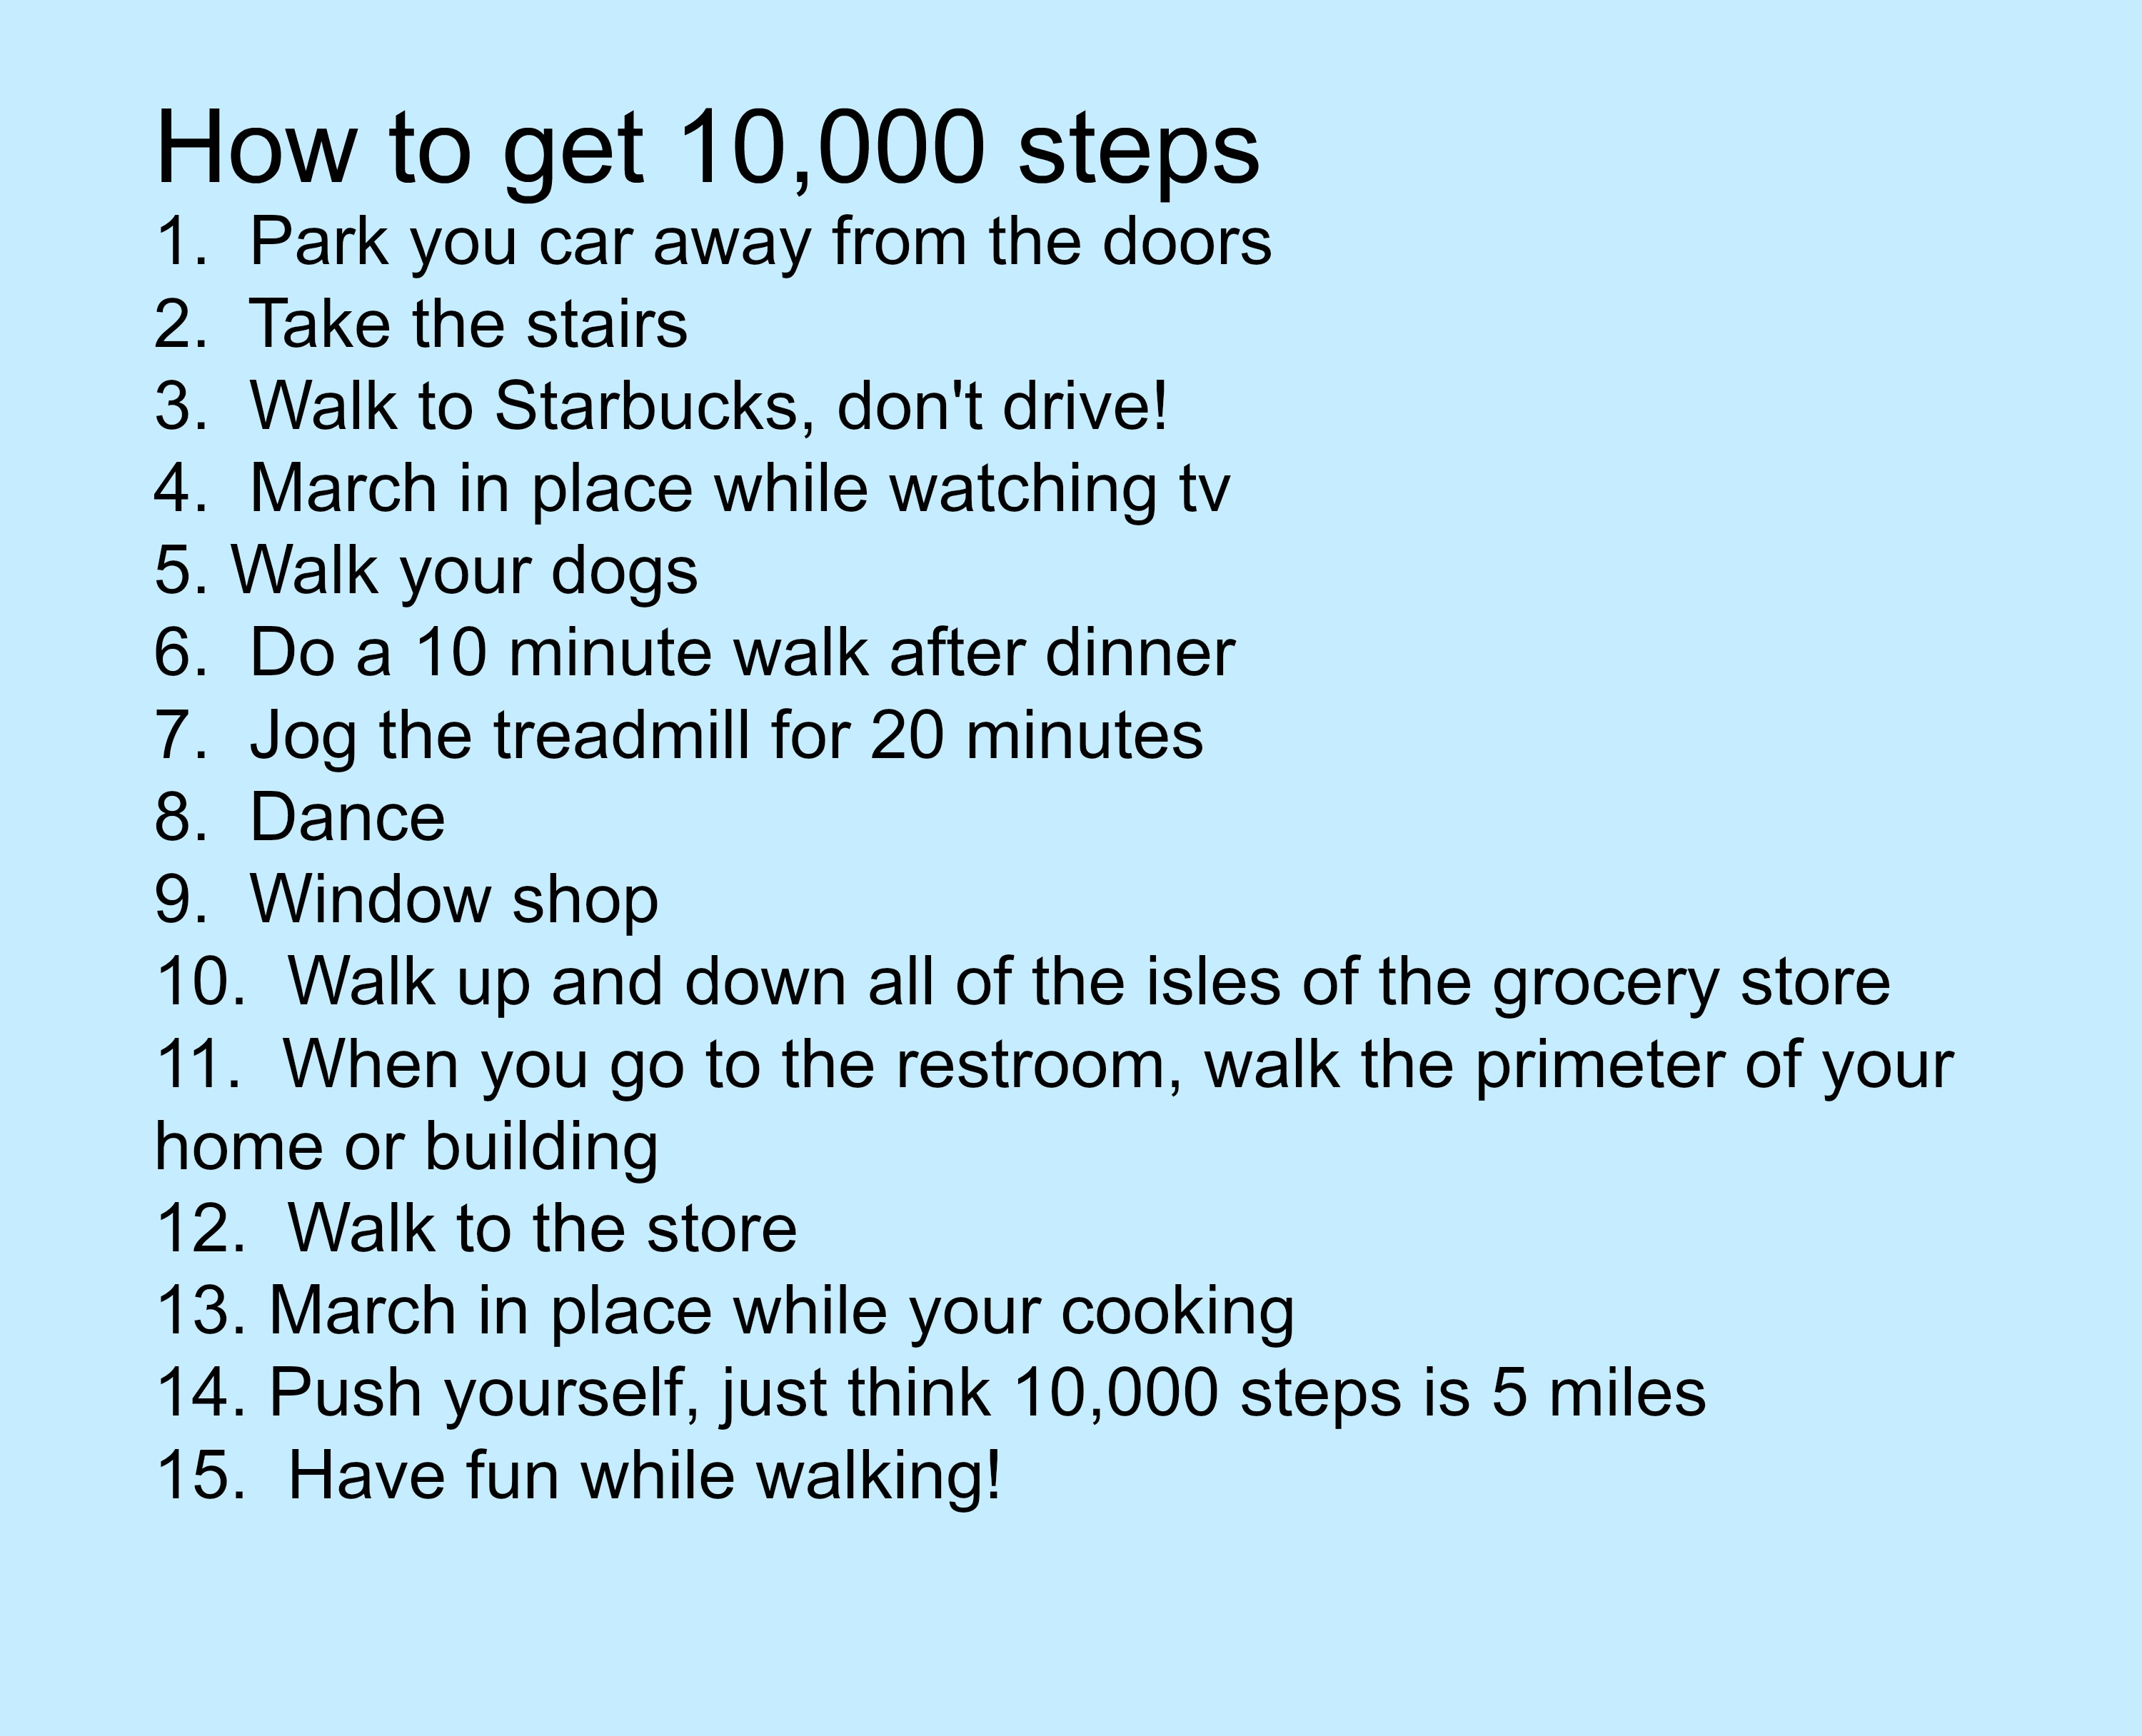 How to get 10,000 steps